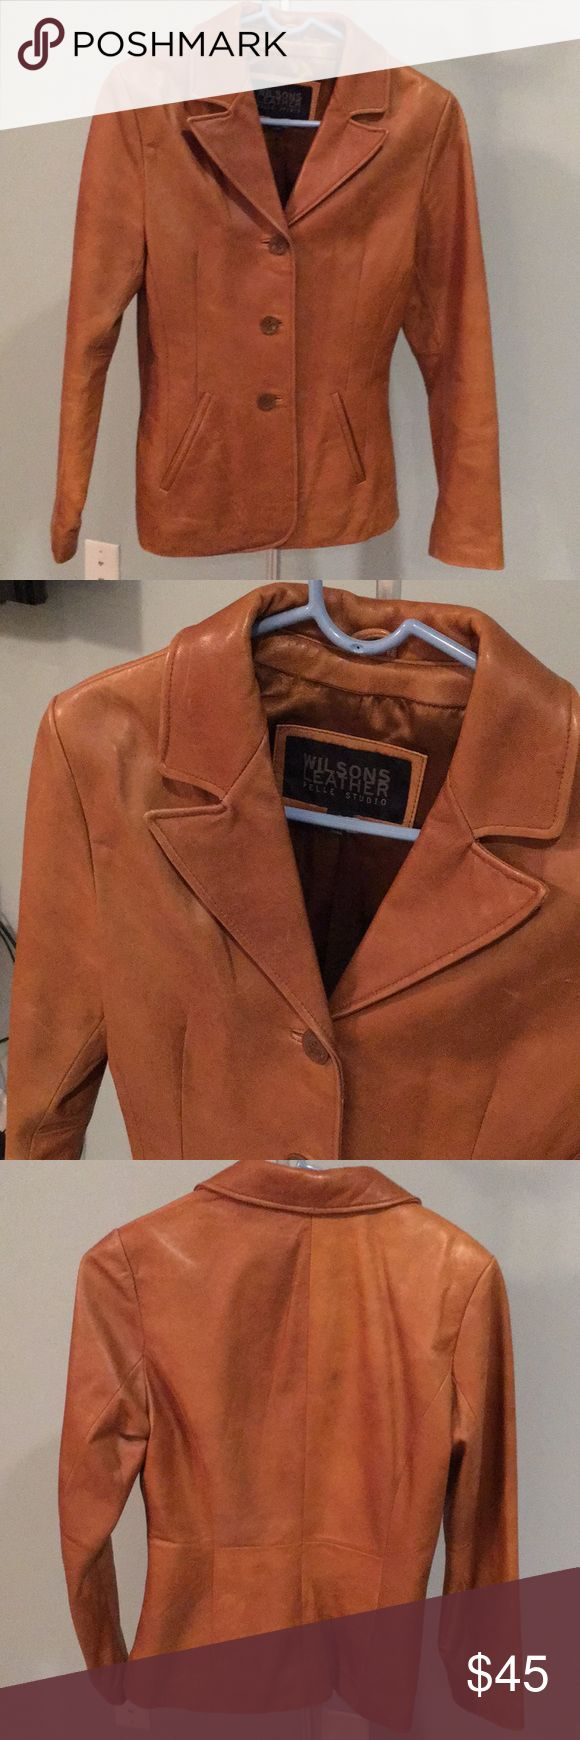 Camel leather blazer/ coat Wilson's leather camel colored 3 button blazer. Sturdy, fashionable! Wilsons Leather Jackets & Coats